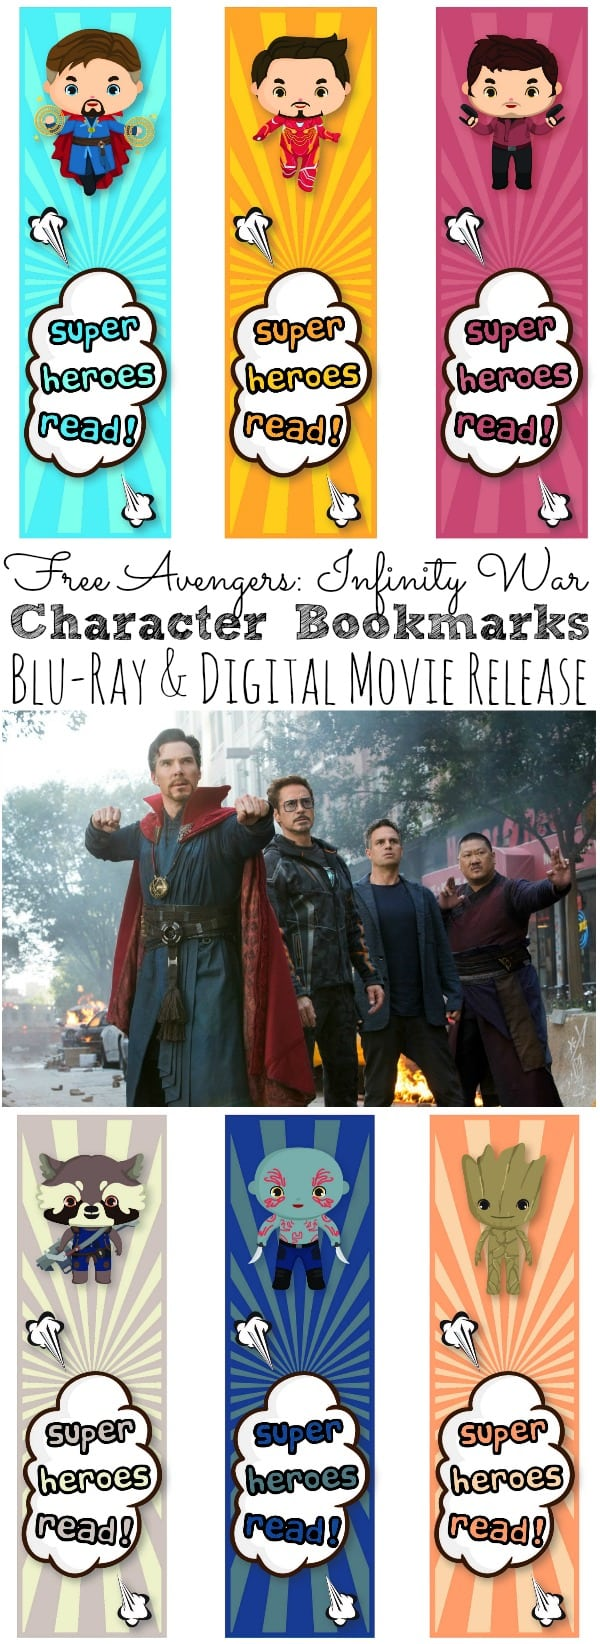 Free Avengers: Infinity War Bookmarks | Plus Digital and Blu-Ray Movie Release - simplytodaylife.com